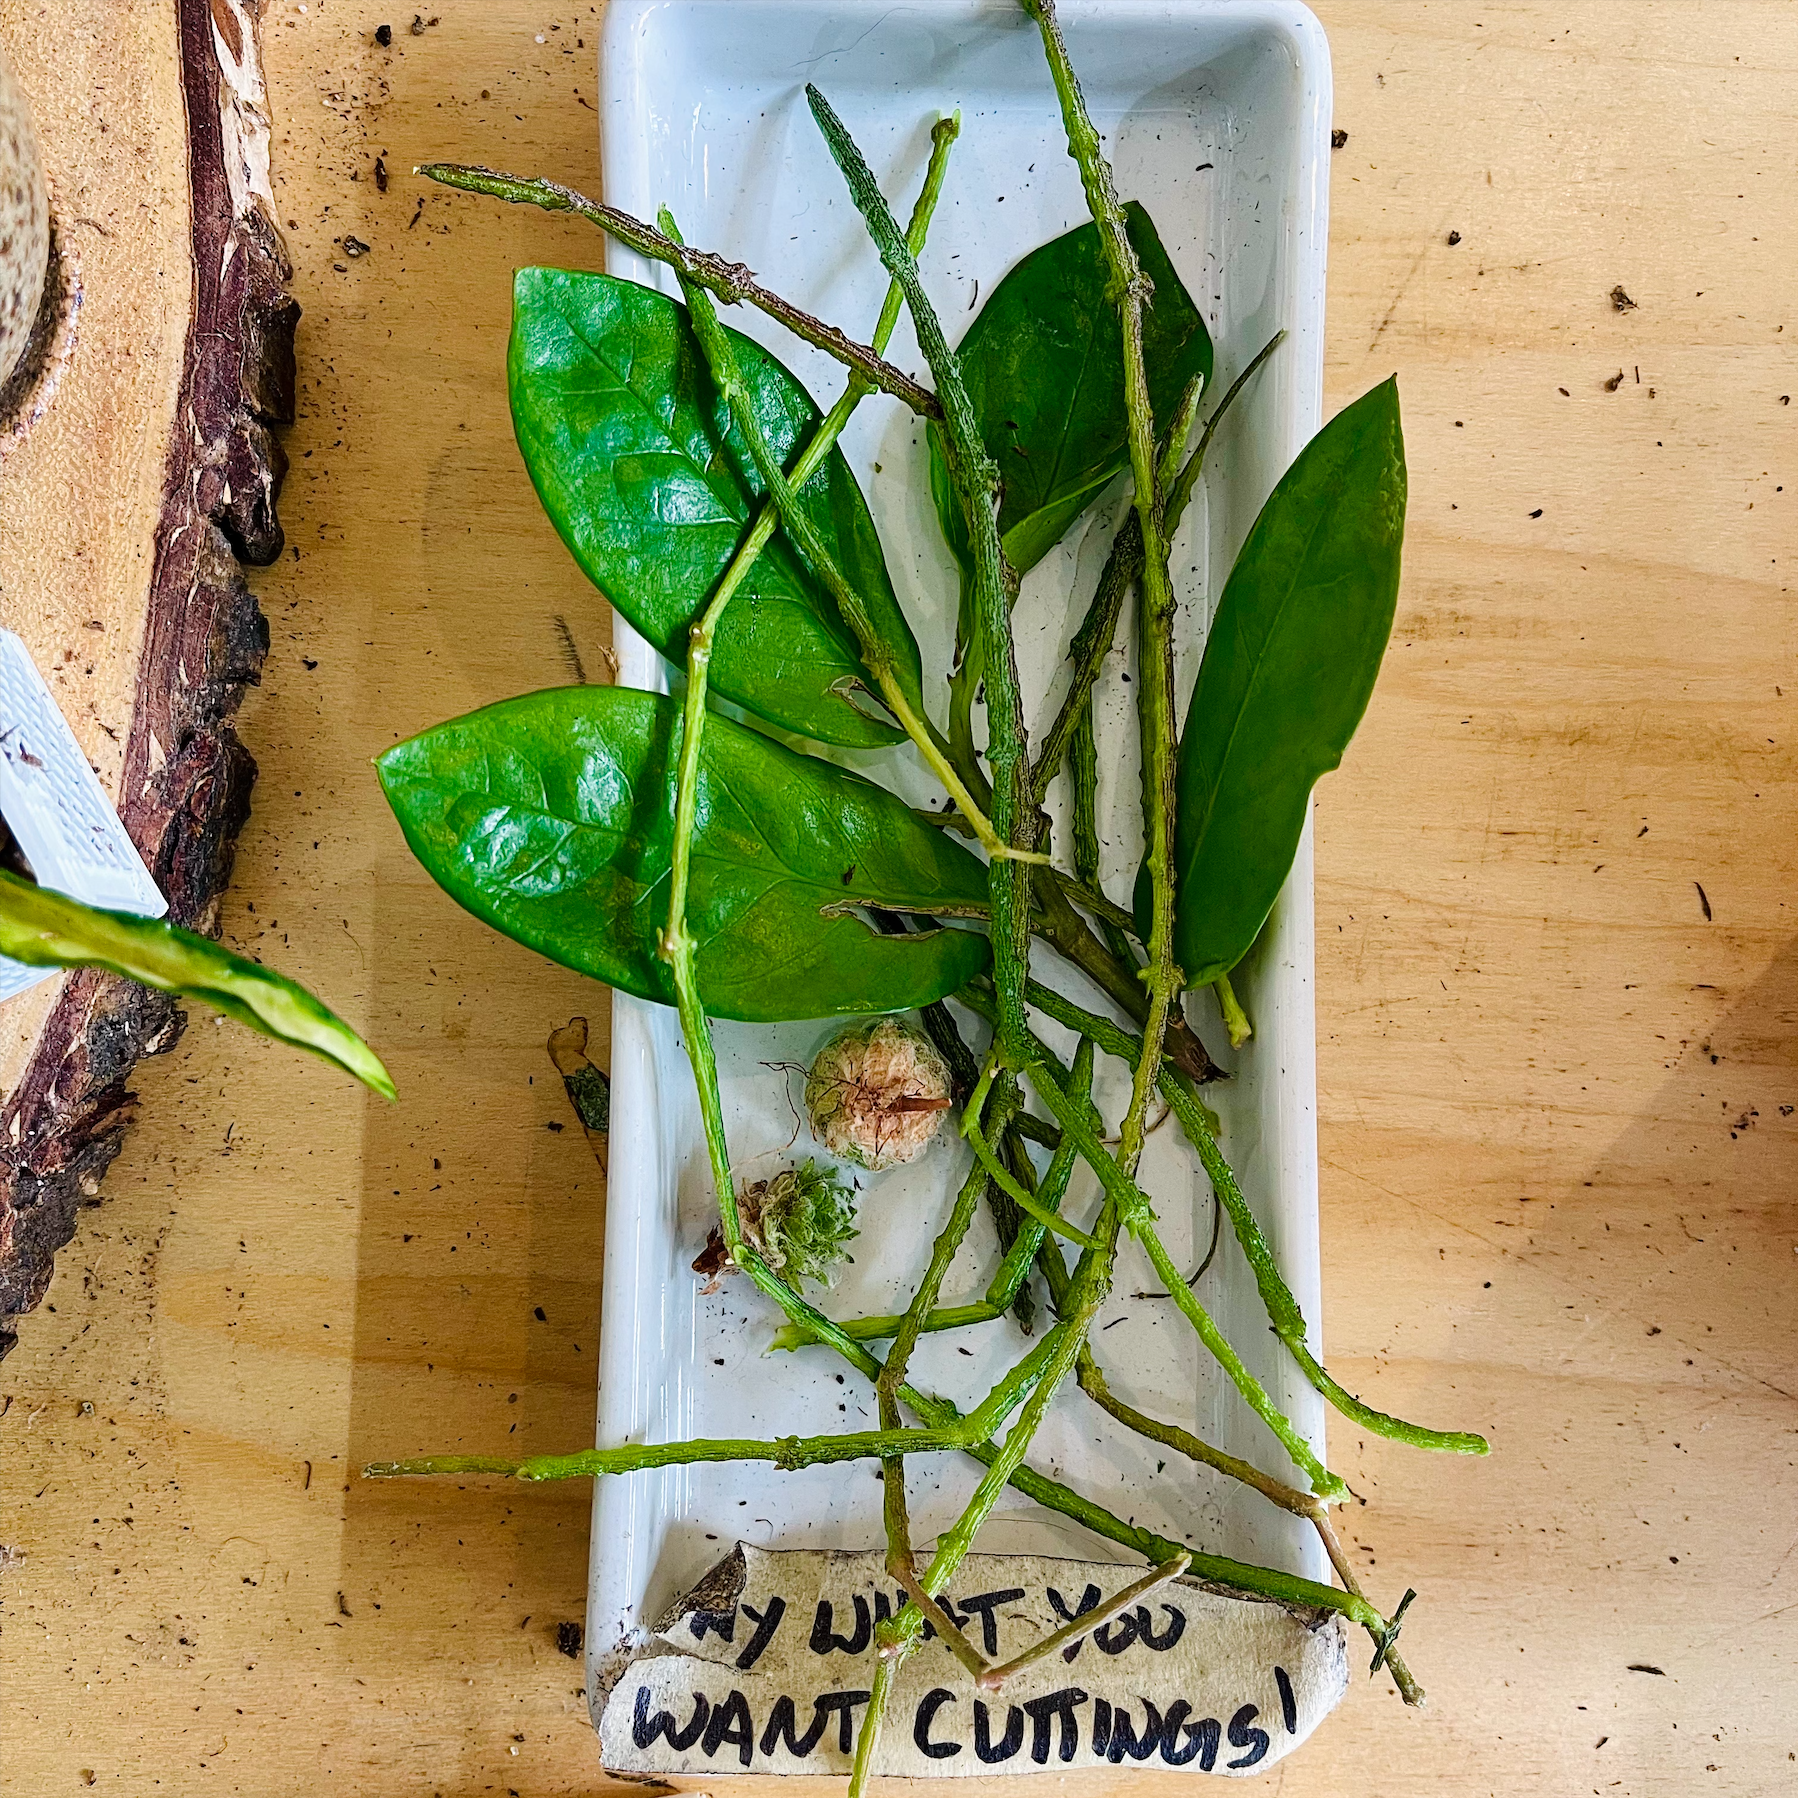 Pay what you can cuttings